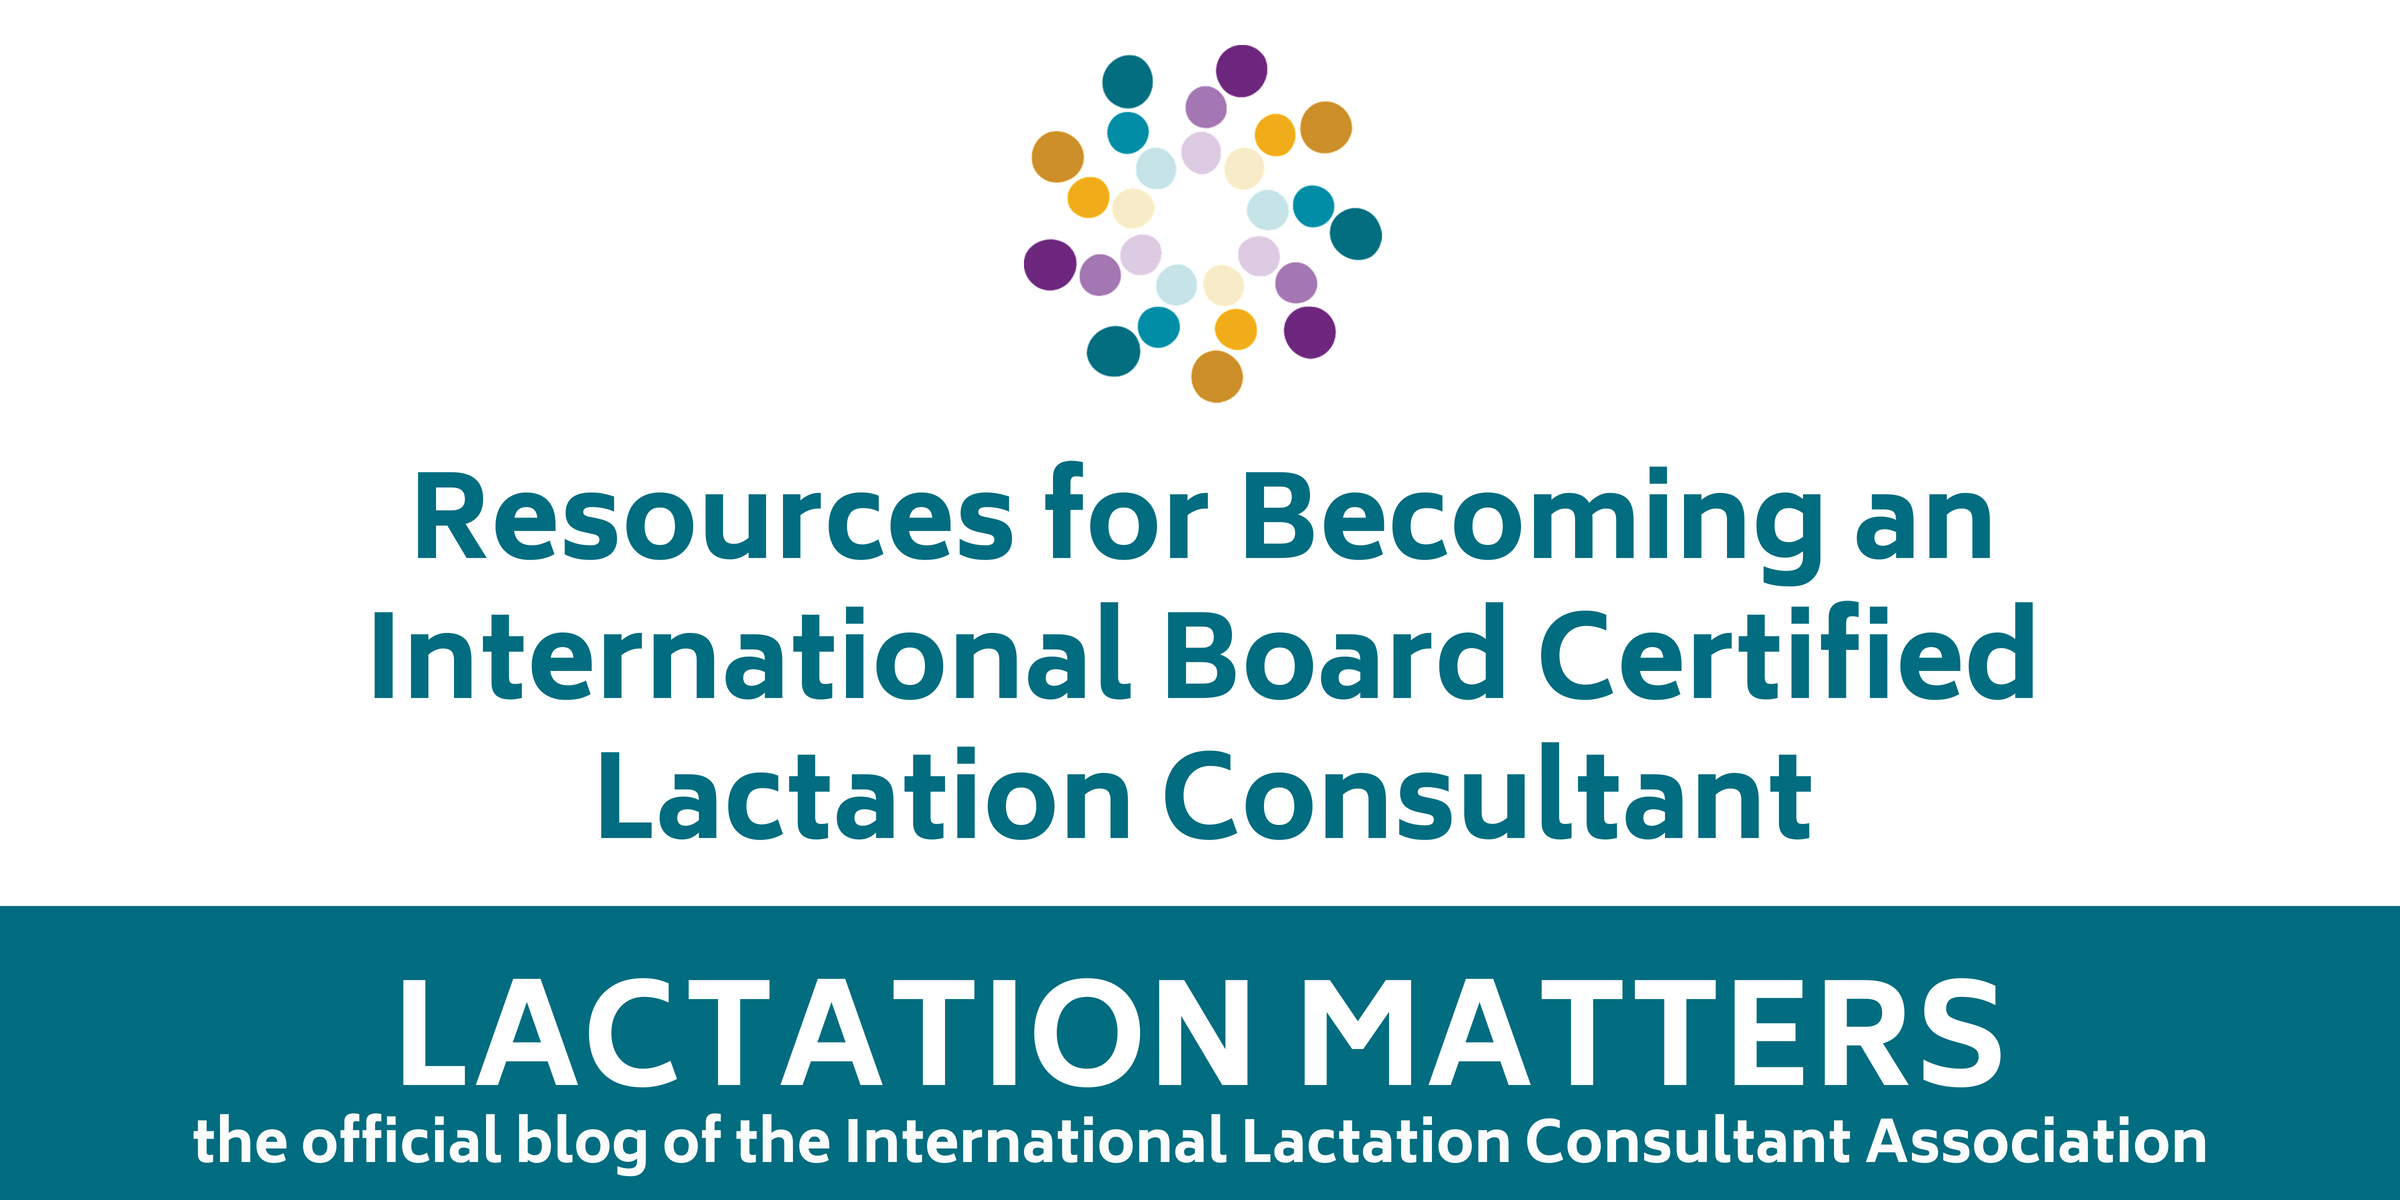 Resources For Becoming An International Board Certified Lactation